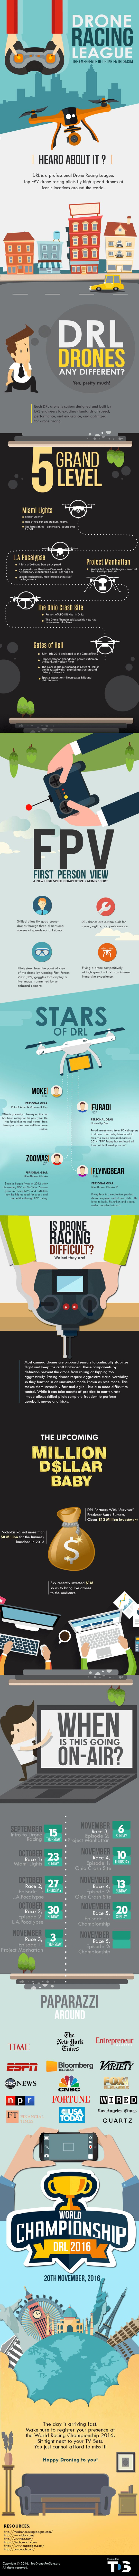 Drone Racing League – The Emergence Of Drone Enthusiasm #Infographic #Drone #Technology